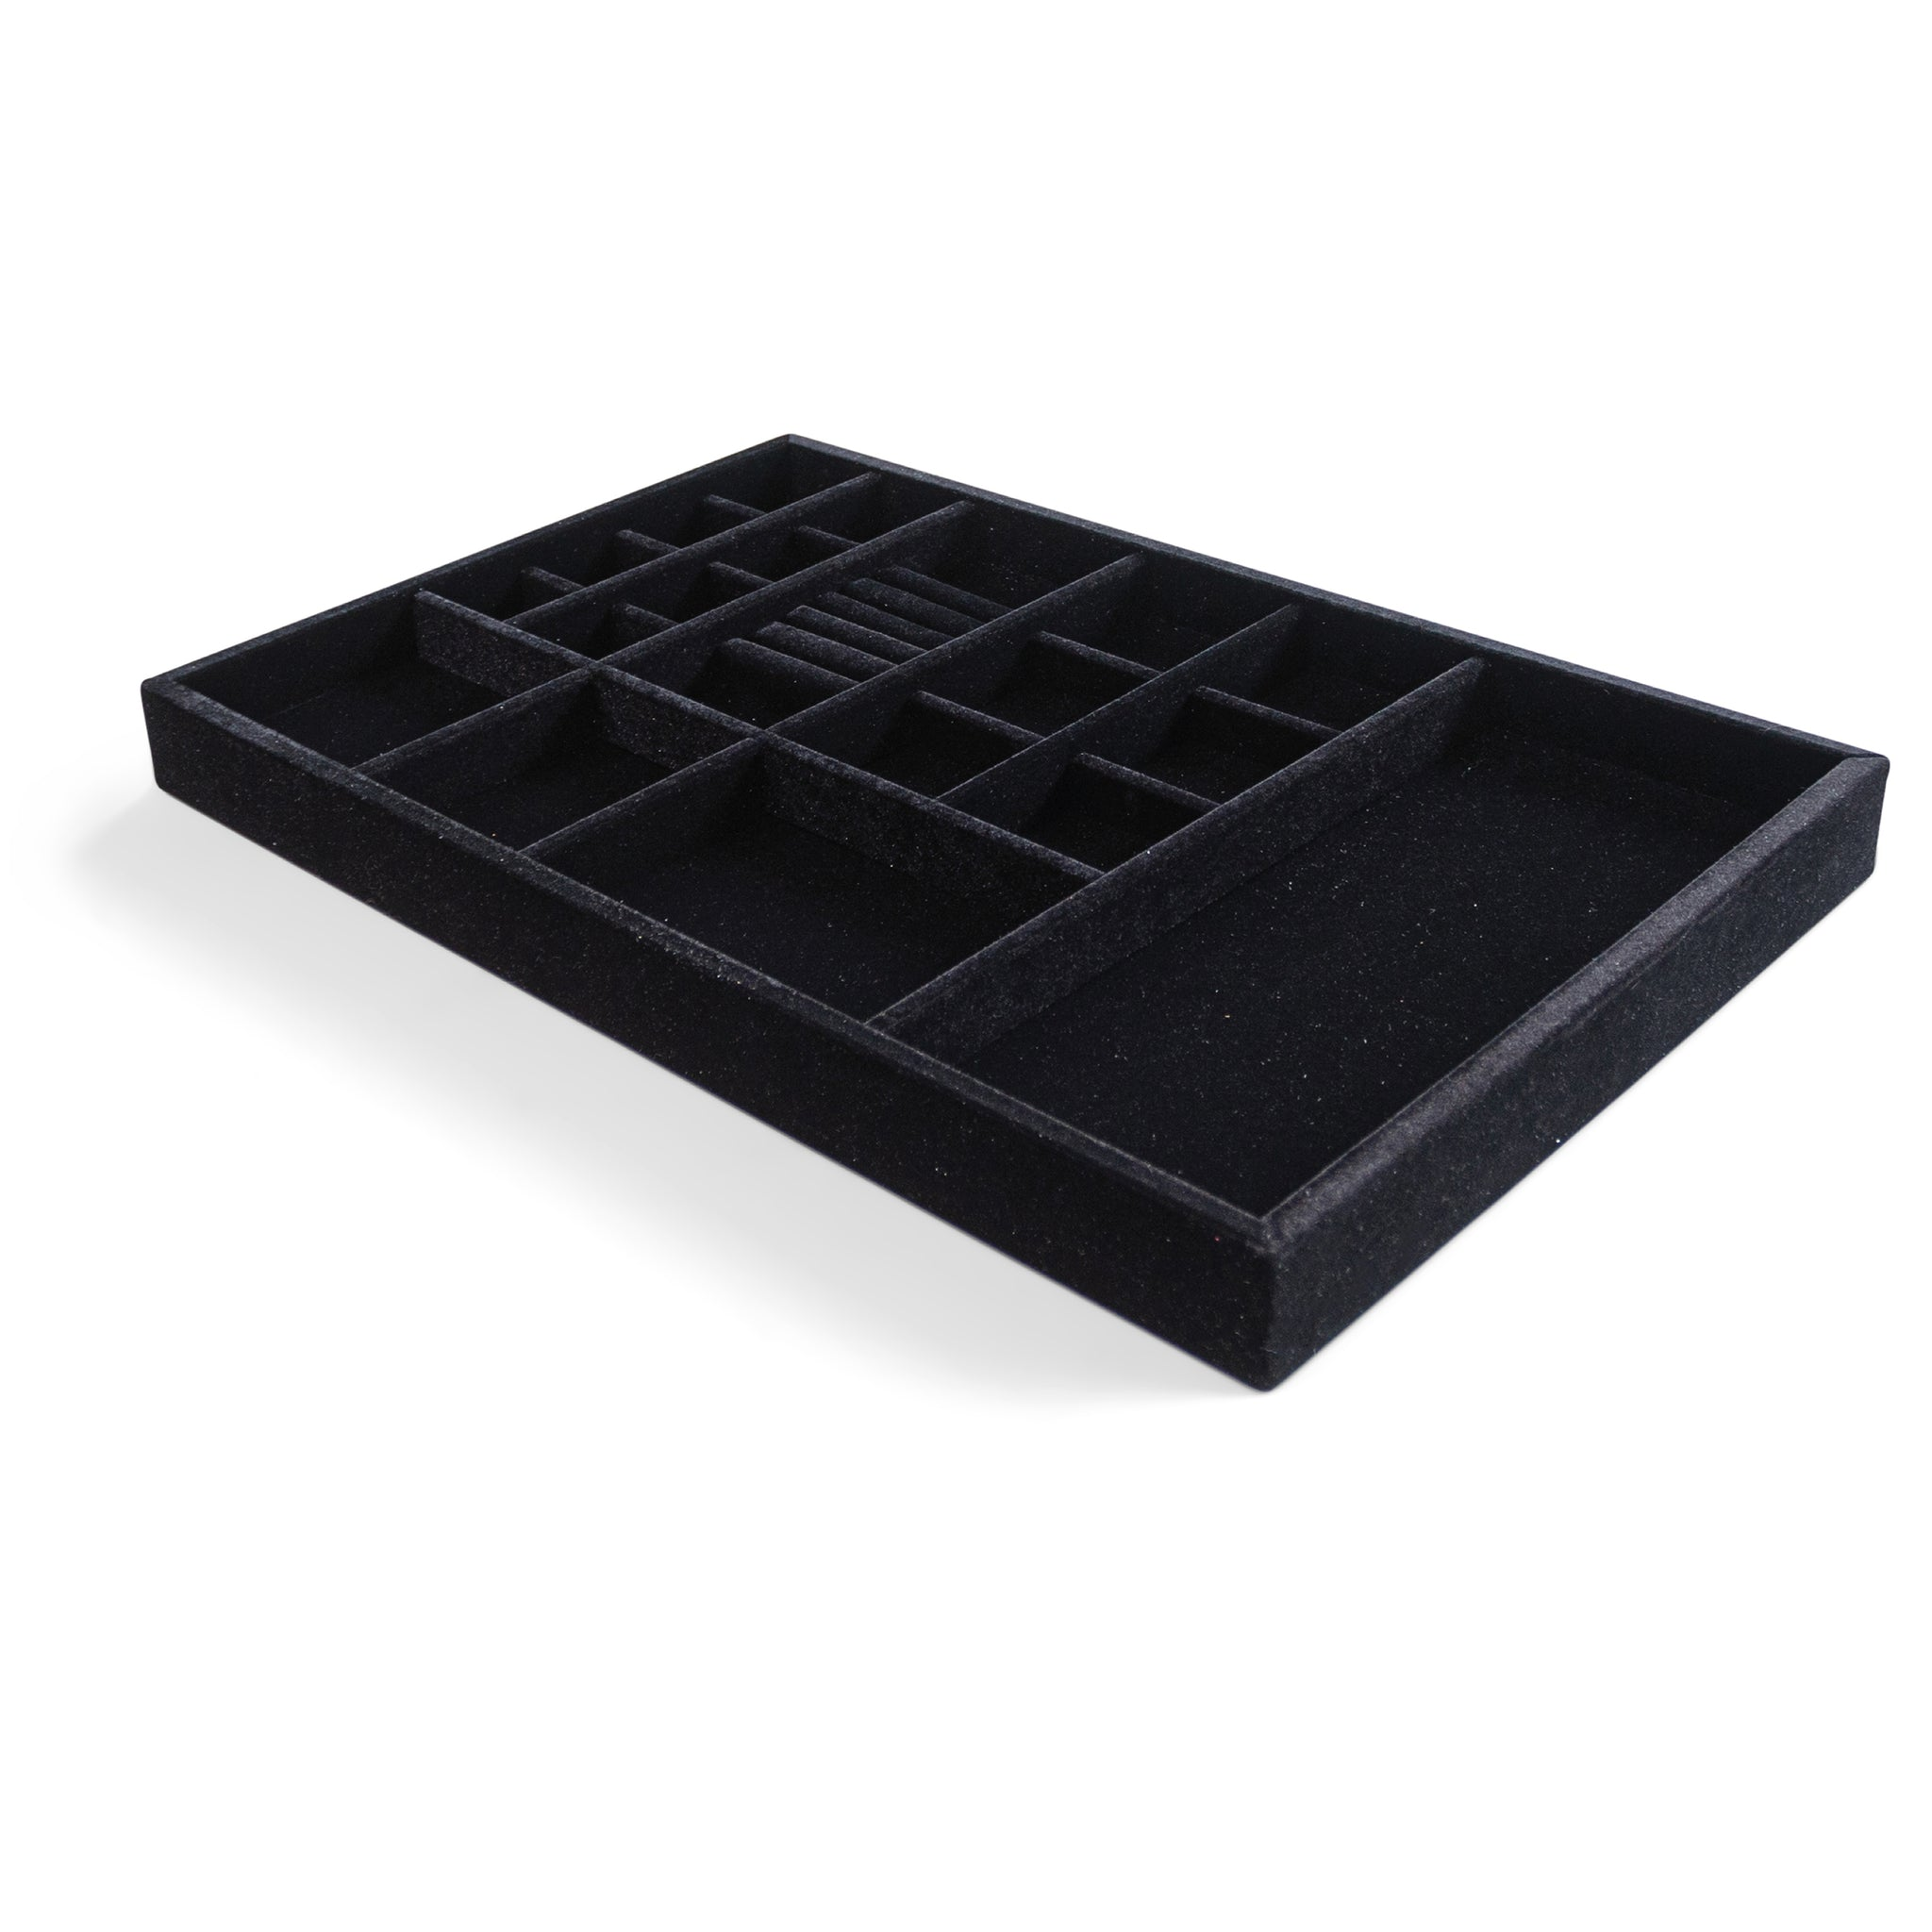 "Jewelry Organizer Drawer Insert,  Wood and Velvet Tray Made In USA , (Black) 21.5"" x 14.5""x 2"" - Beauty By Eden LLC"